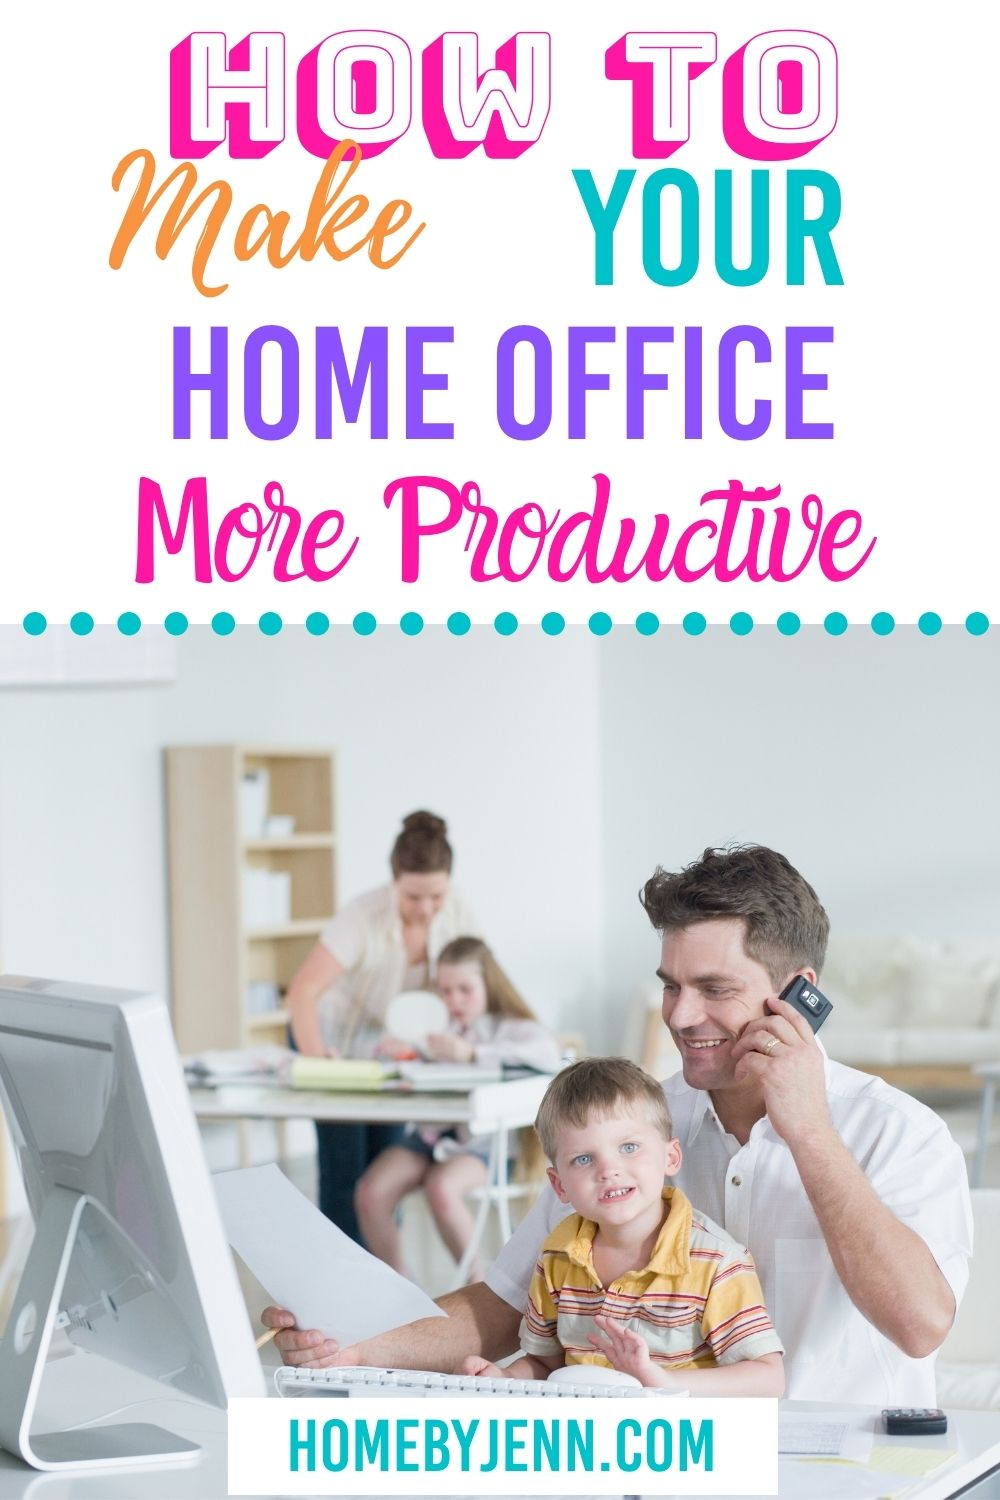 With the pandemic continuing on it's important to have a productive home office space. Today I'm going to share how to make your home office more productive. These are simple things you can do to help increase productivity while working in your home office. via @homebyjenn